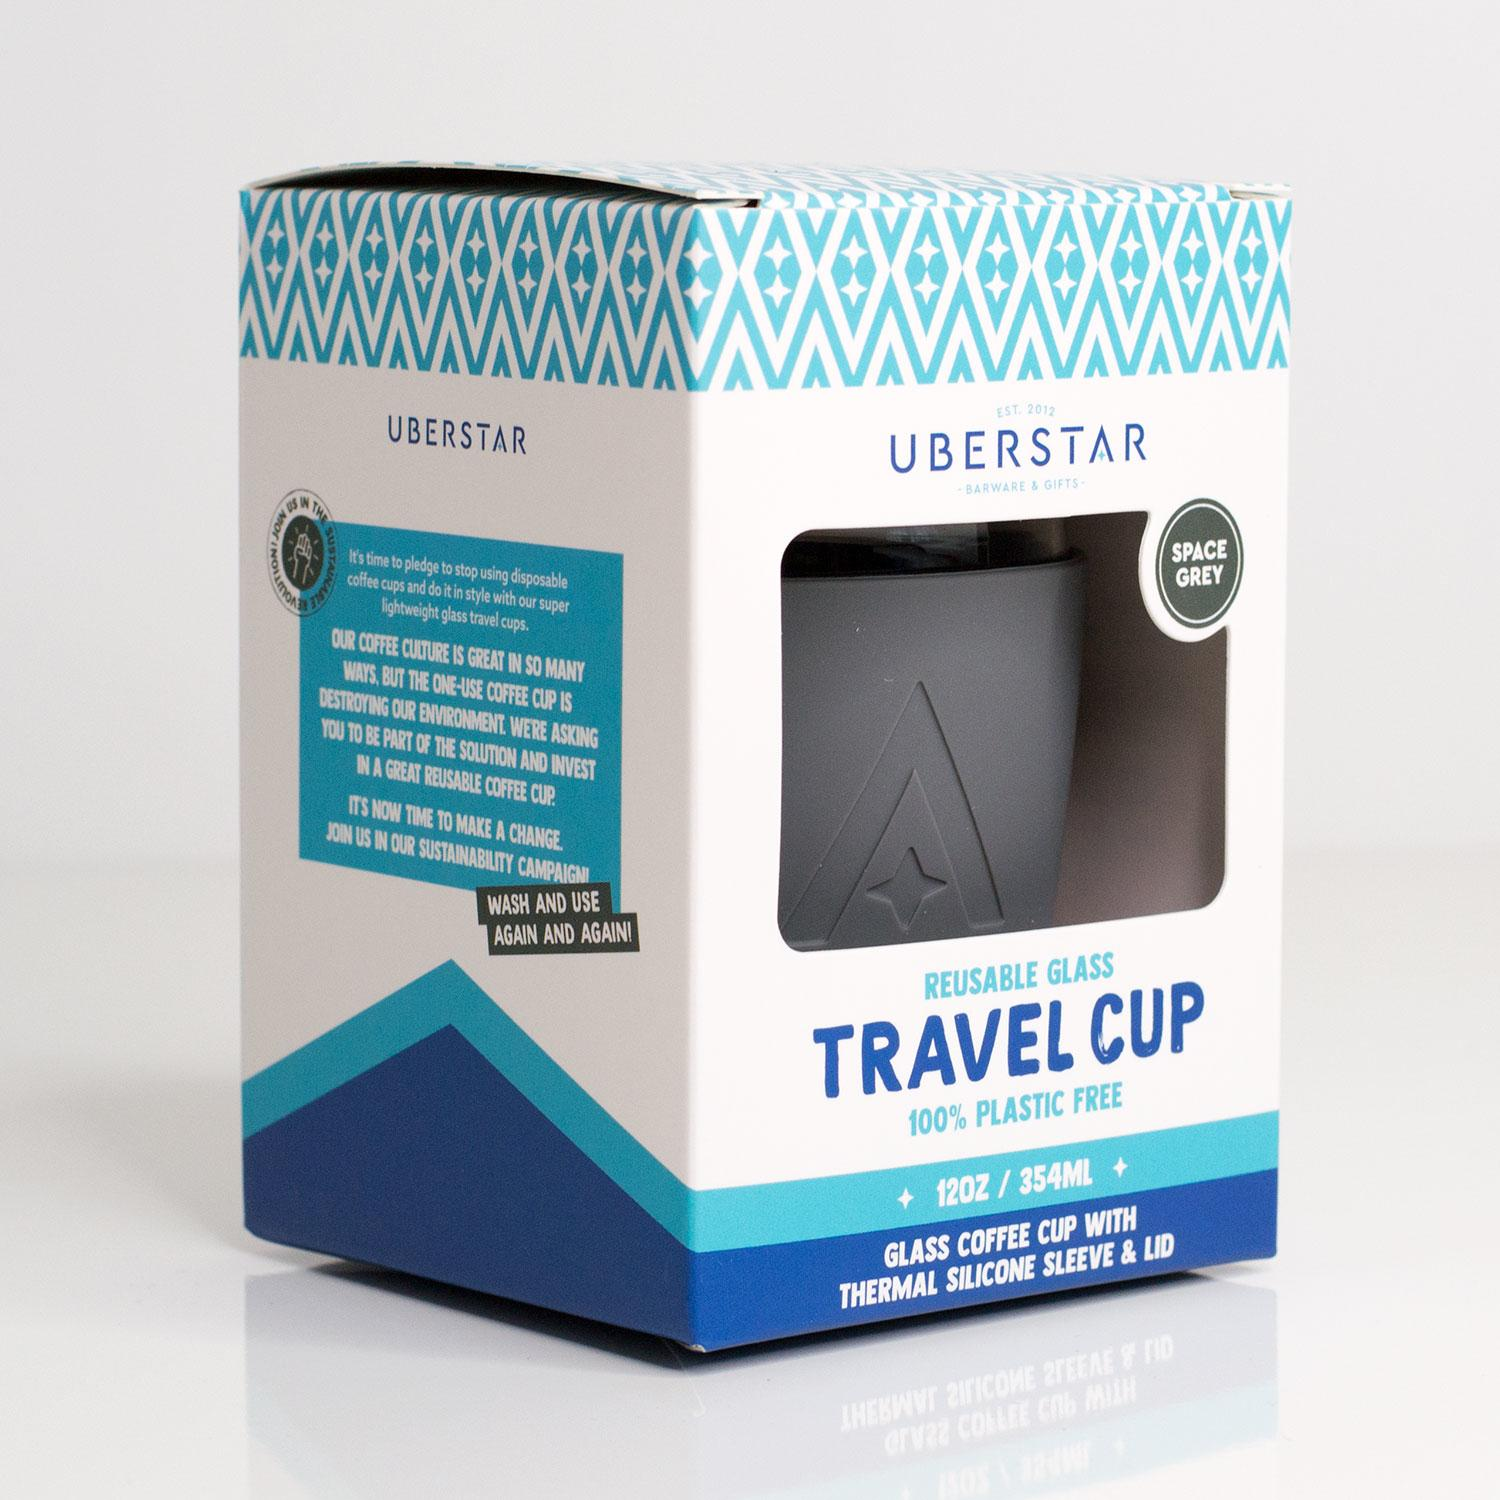 Uberstar Reusable Glass Travel Cup - Space Grey - Only £14.99